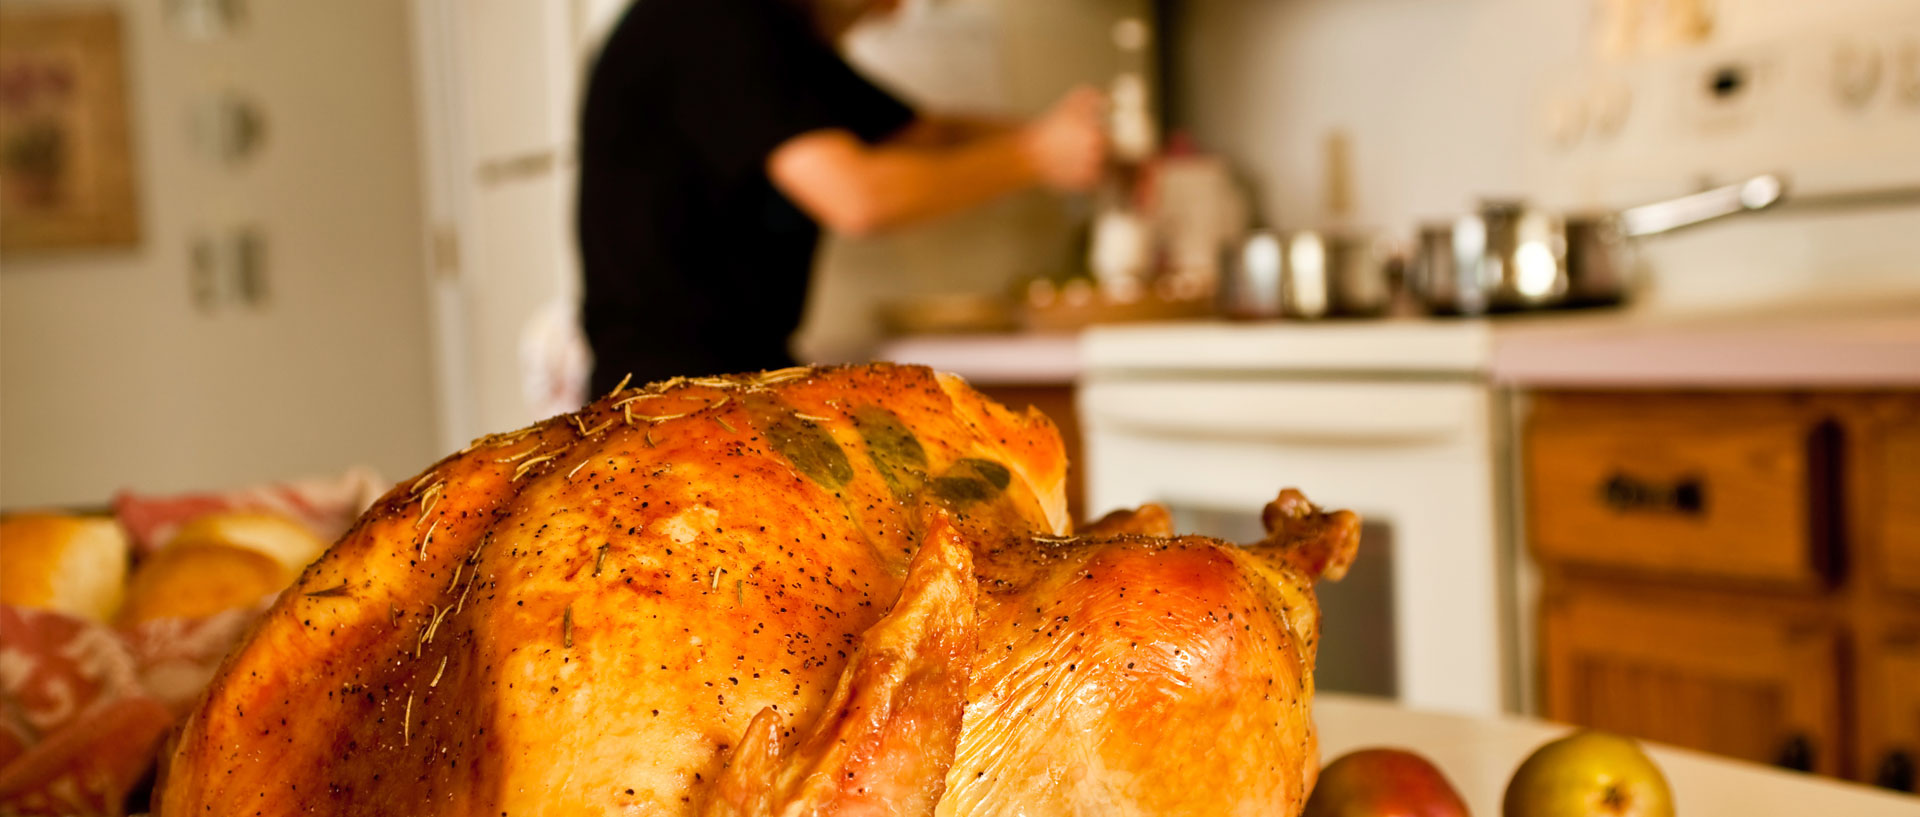 8 Kitchen Tools That Make Holiday Cooking a Breeze